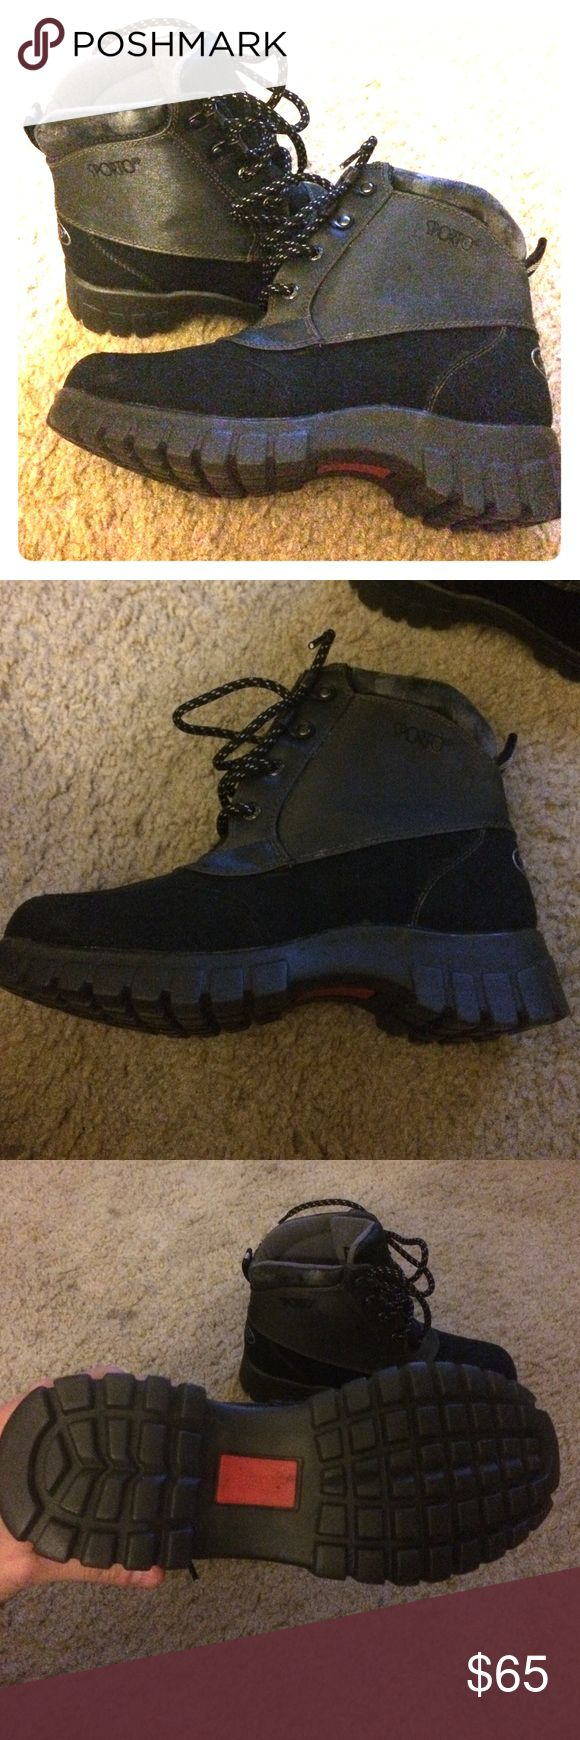 "Sporto ""Original Ducks""thermolite winter boots NWT NWT sporto boots vanna style. Tag says they have Thermolite performance insulations -DuPont certified insulation -Exceptional warmth -Odorless & non-allergenic -Insole retains thermal benefits even when damp -durable. Coined the ""Original Ducks"". Wear pictures in the forth picture, discoloring and some shedding on only the top lining of the boots from sitting in the box for so long. Otherwise in AMAZING condition!! Sporto Shoes Winter & Rain…"